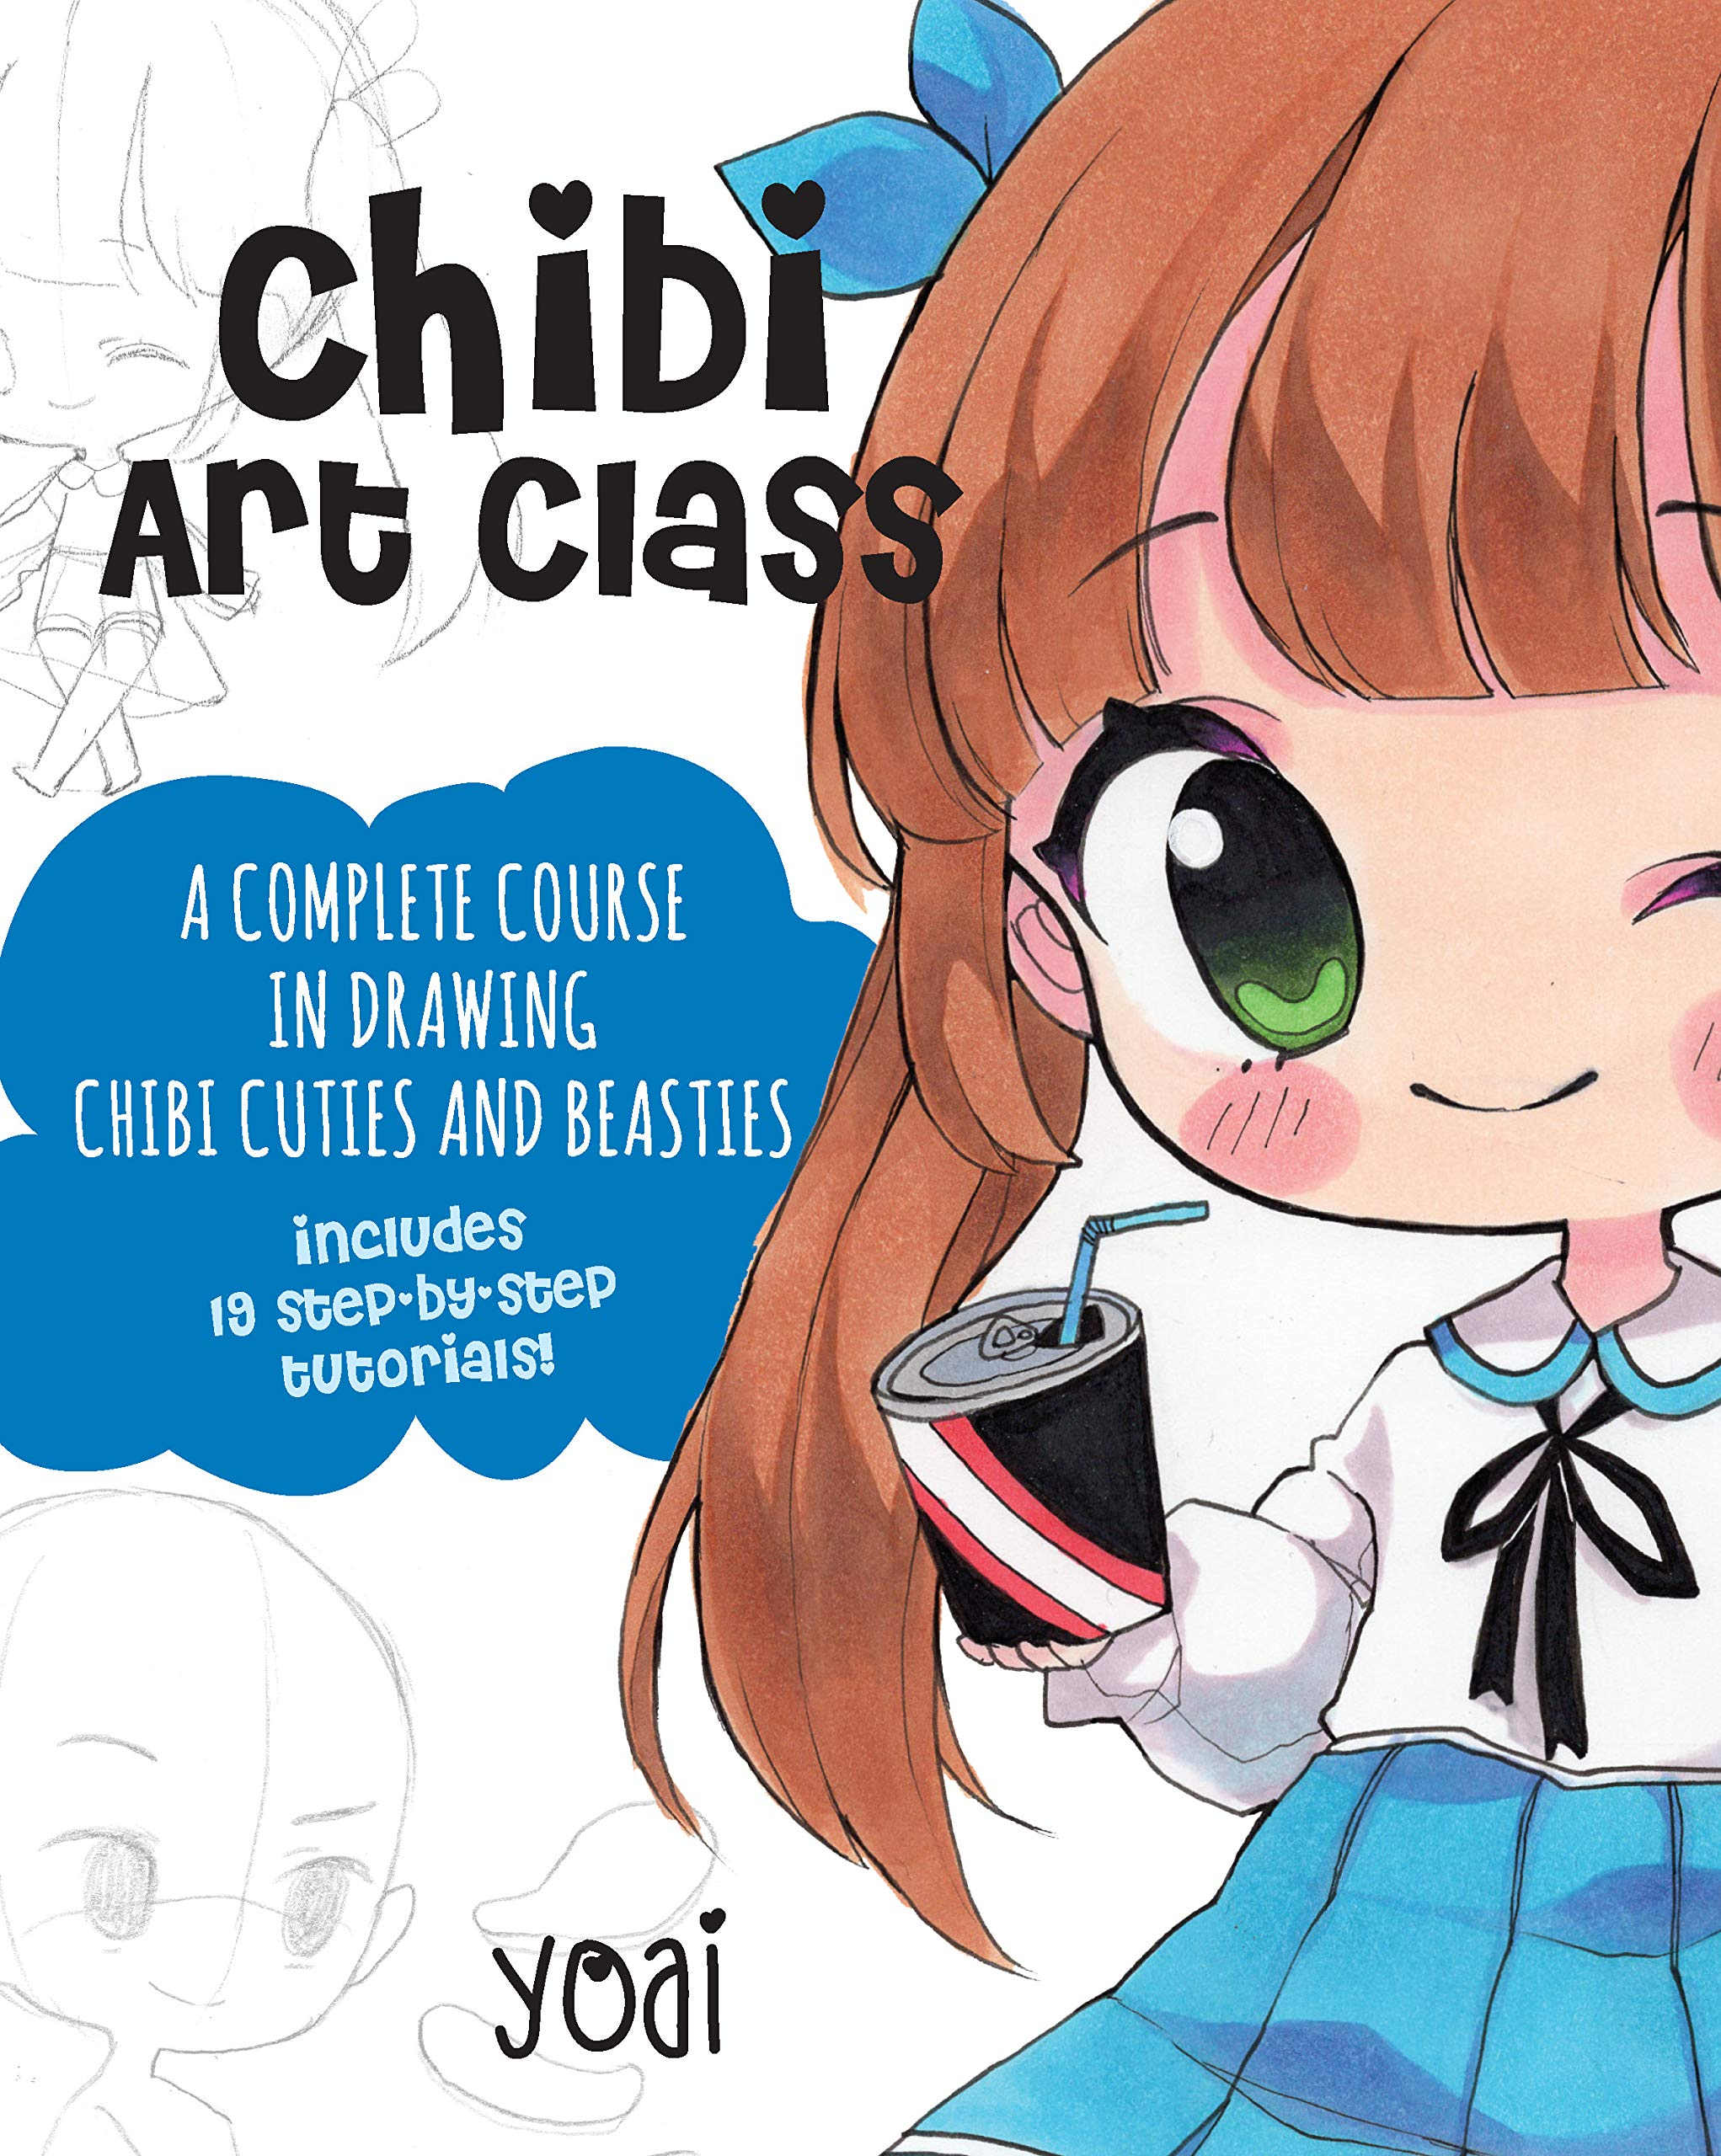 Chibi art class a complete course in drawing chibi cuties and beasties includes 19 step by step tutorials paperback march 26 2019